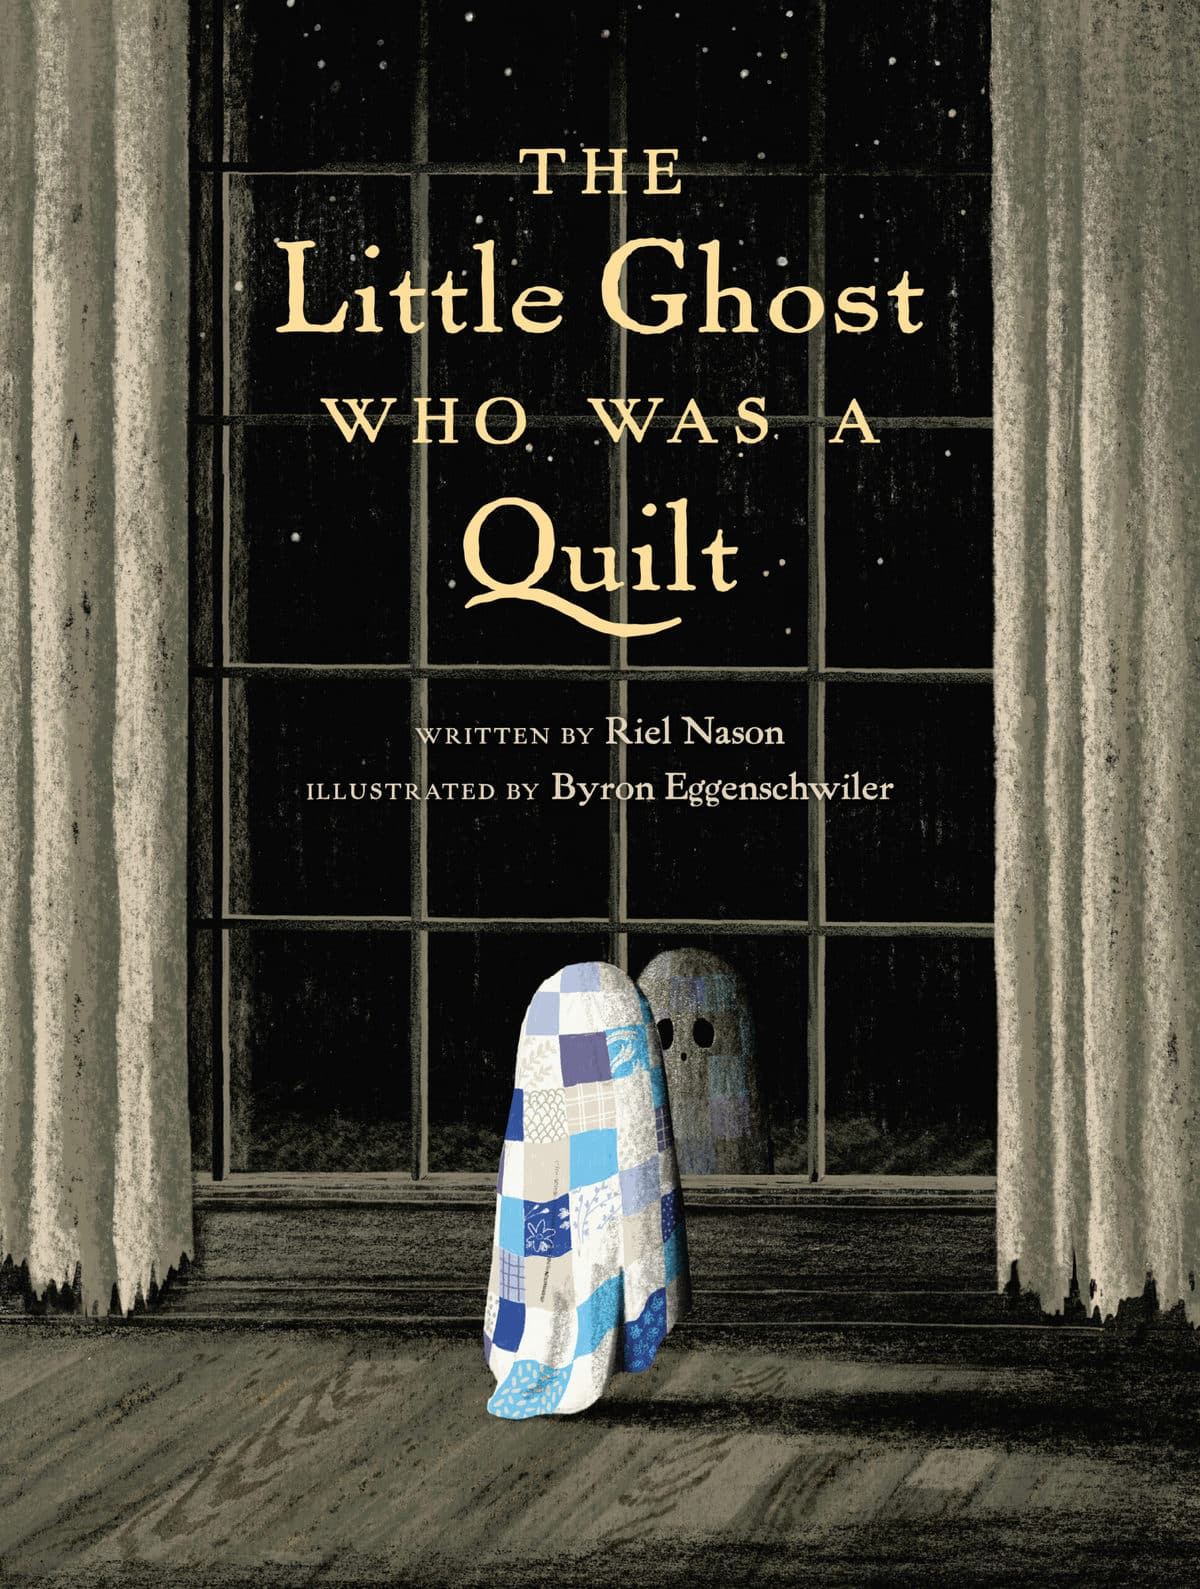 The Little Ghost Who Was a Quilt – book cover image